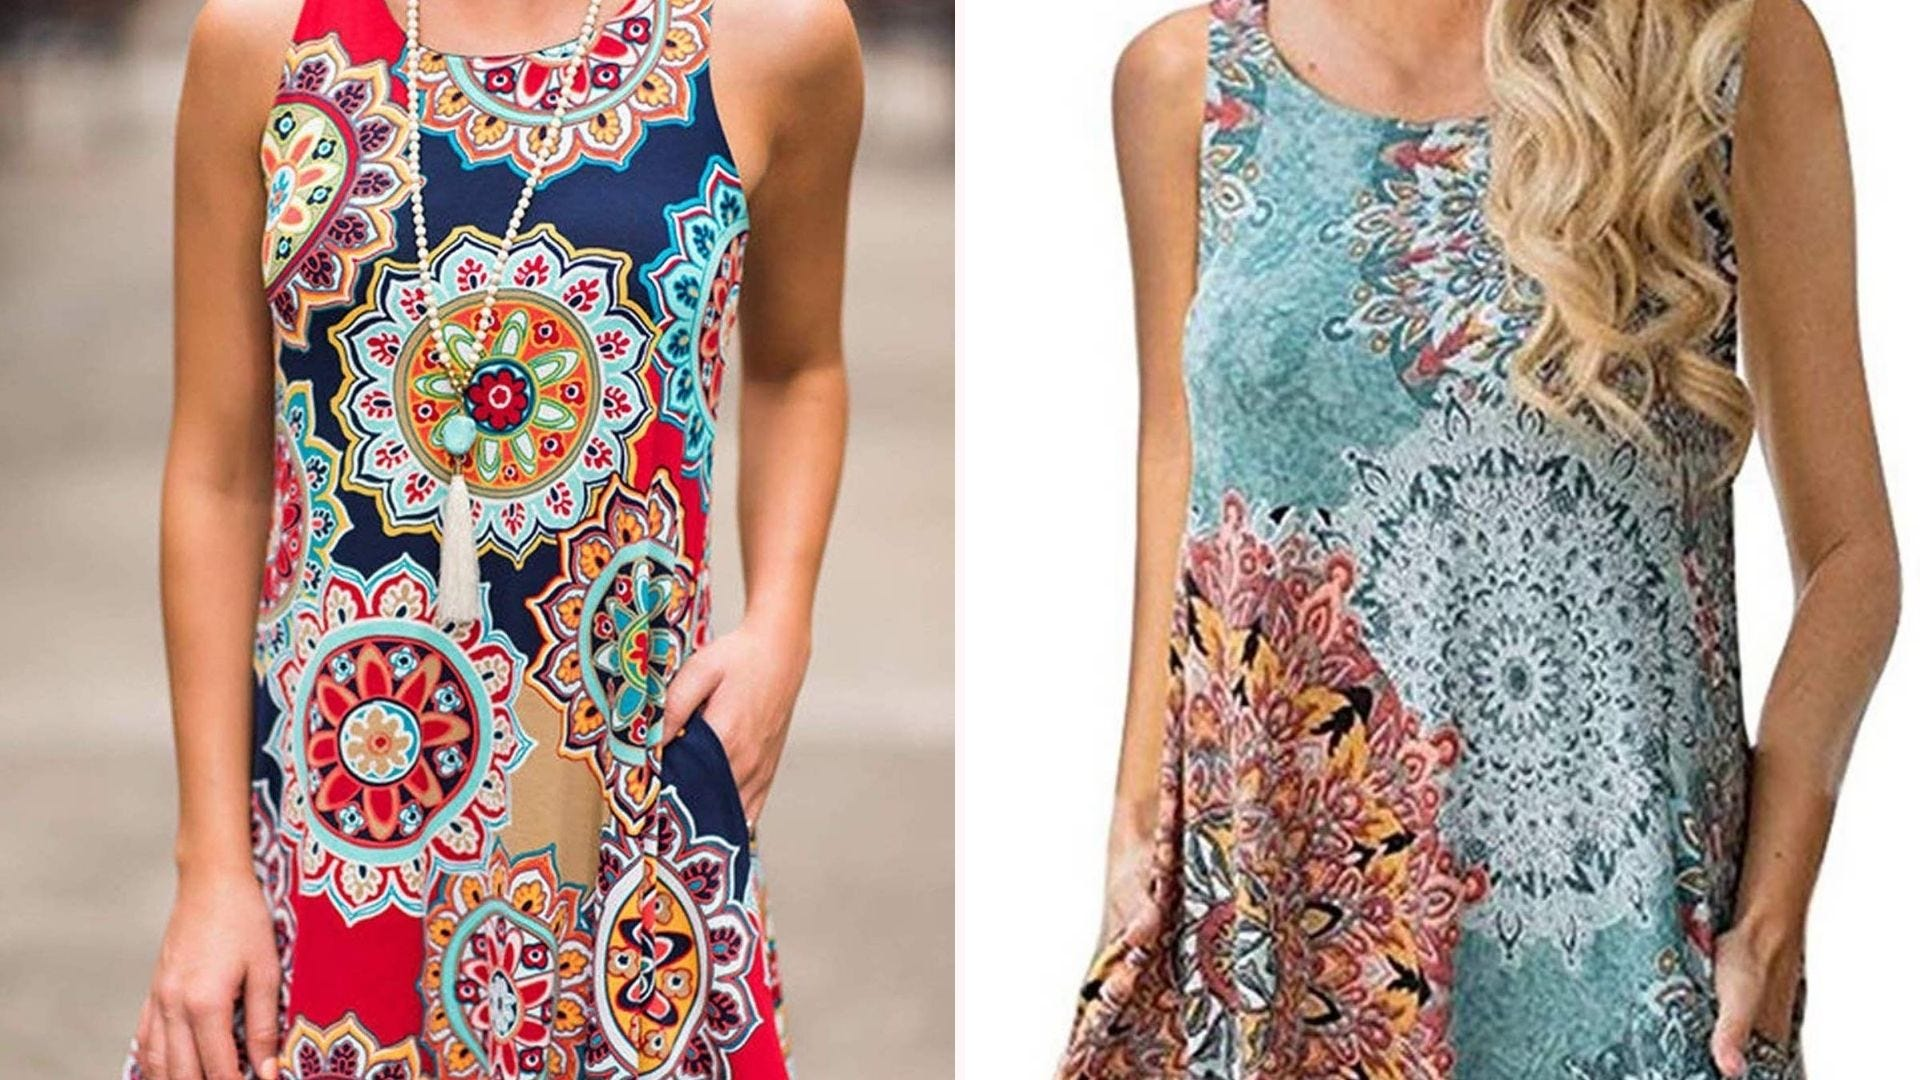 A woman in a multicolor floral graphic print dress; a woman in a blue and red floral print dress